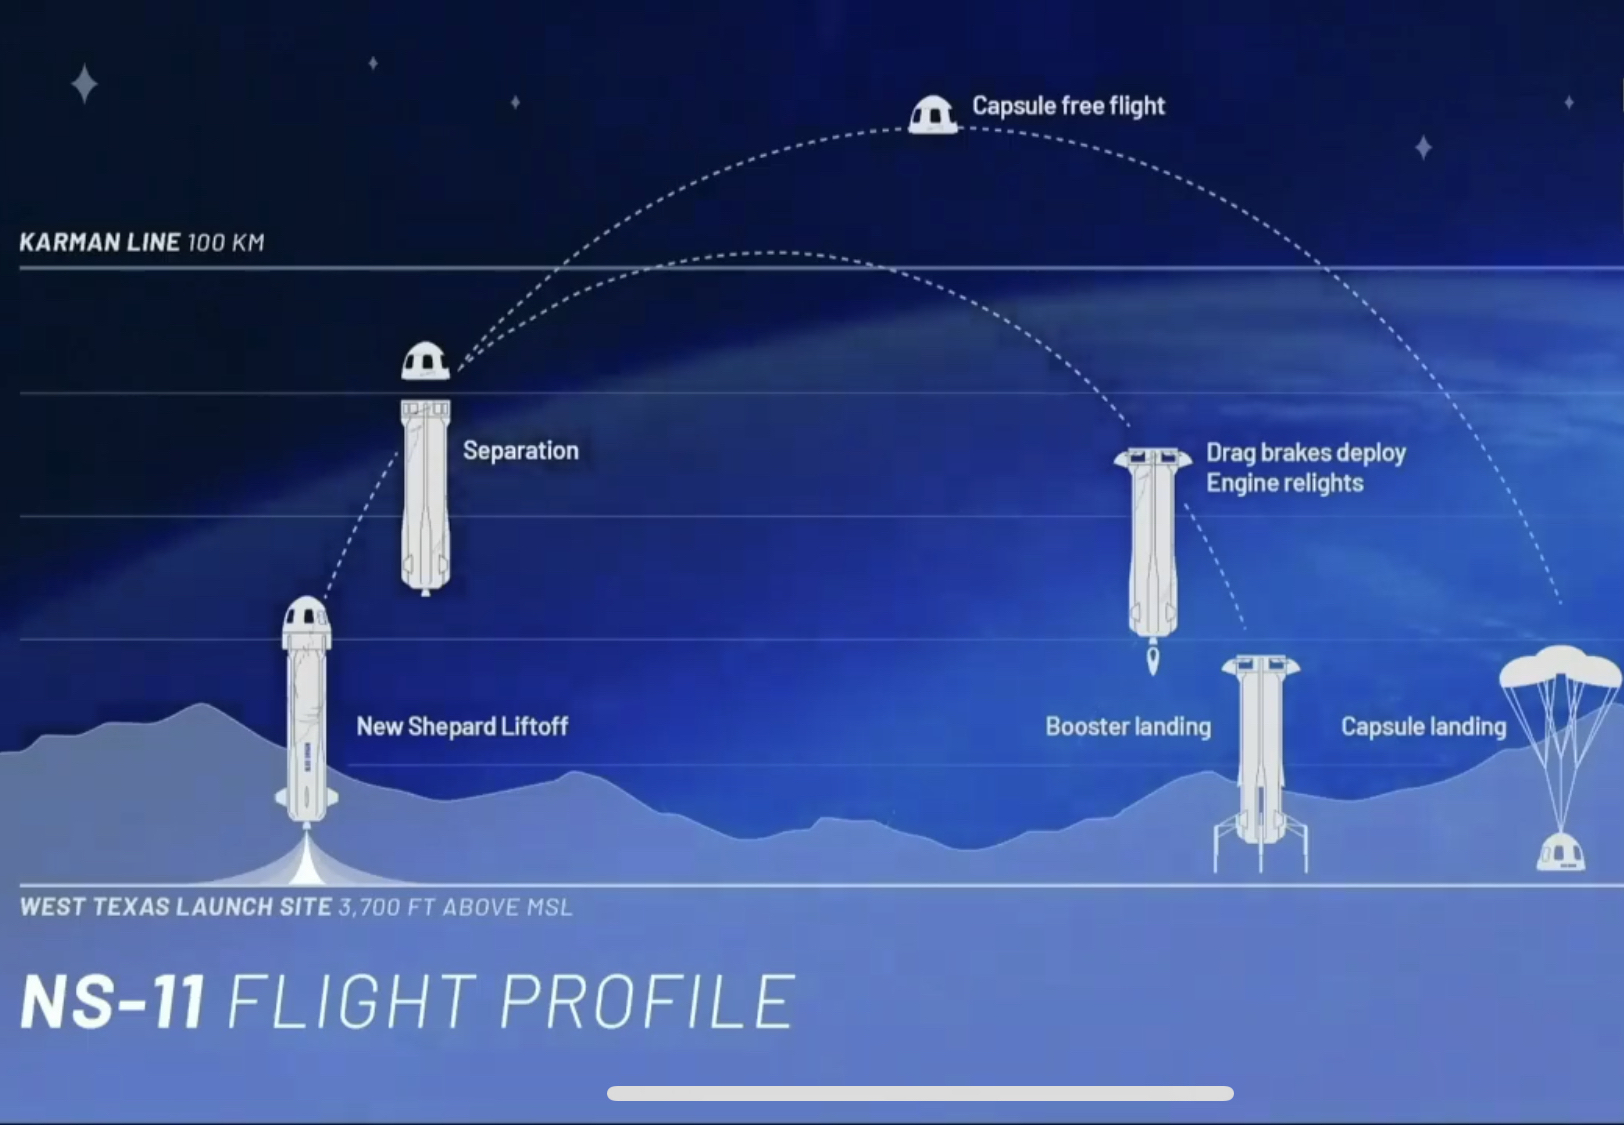 After releasing its payload, New Shepard will attempt a landing downrange of the West Texas Launch Site. - Unlike many rockets available today, New Shepard has only sub-orbital capabilities. The rocket is incapable of achieving a stable orbit.